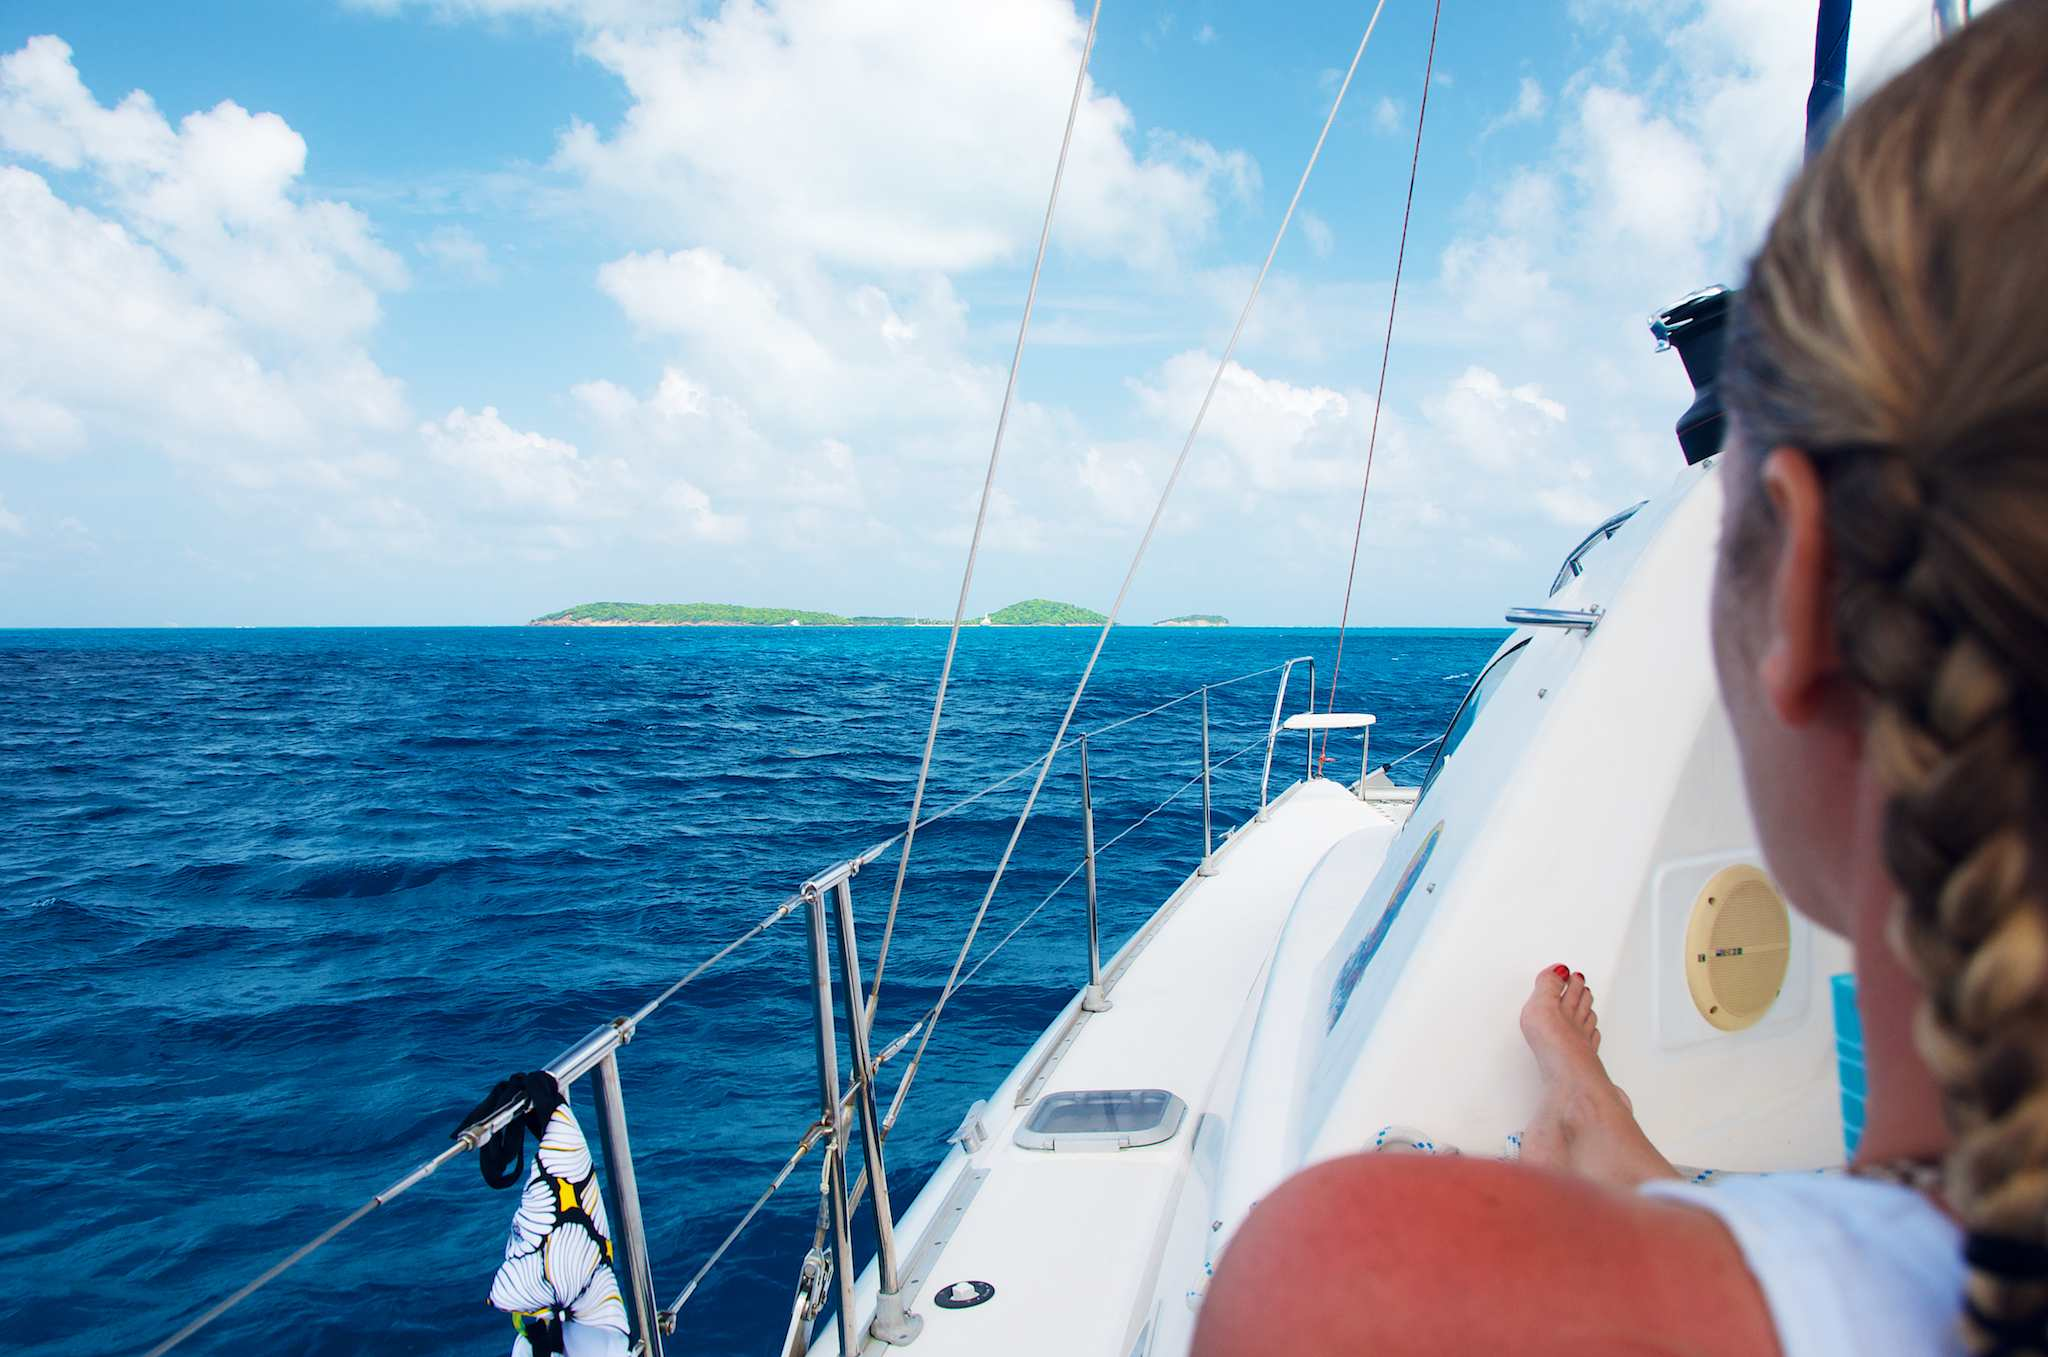 Sailing Towards The Tobago Cays in the Grenadines by Patrick Bennett